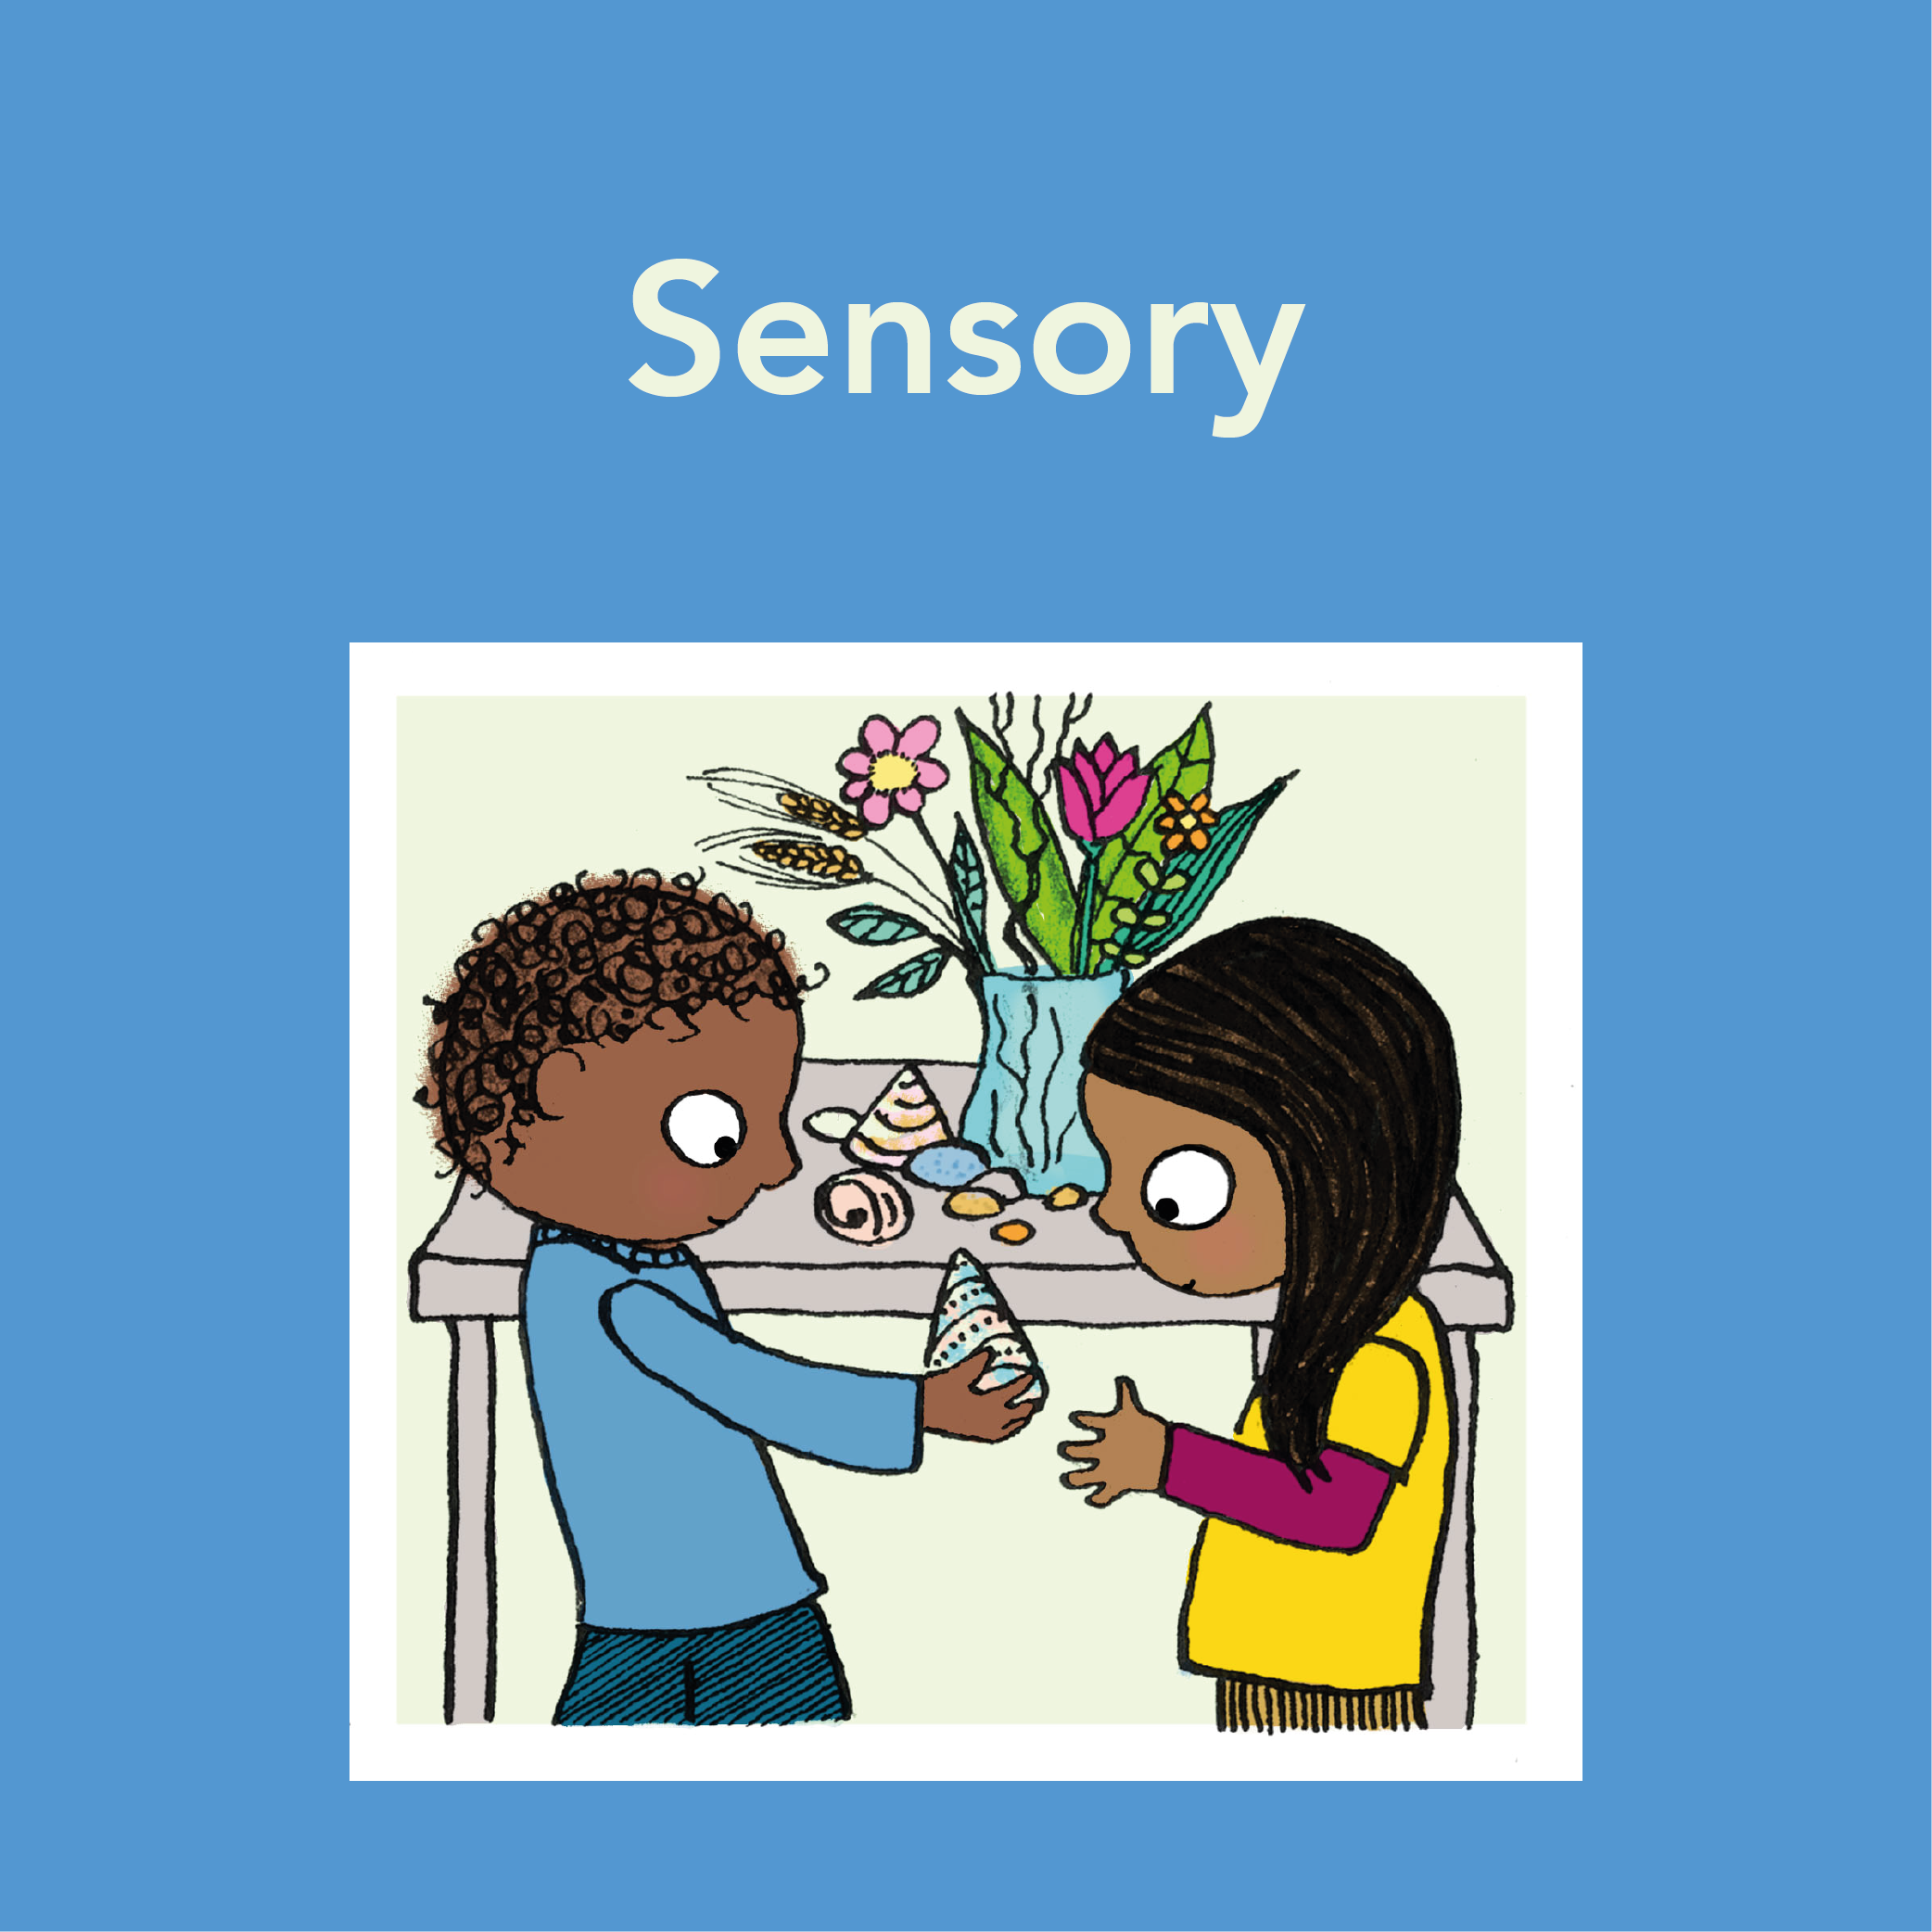 Activities for the senses